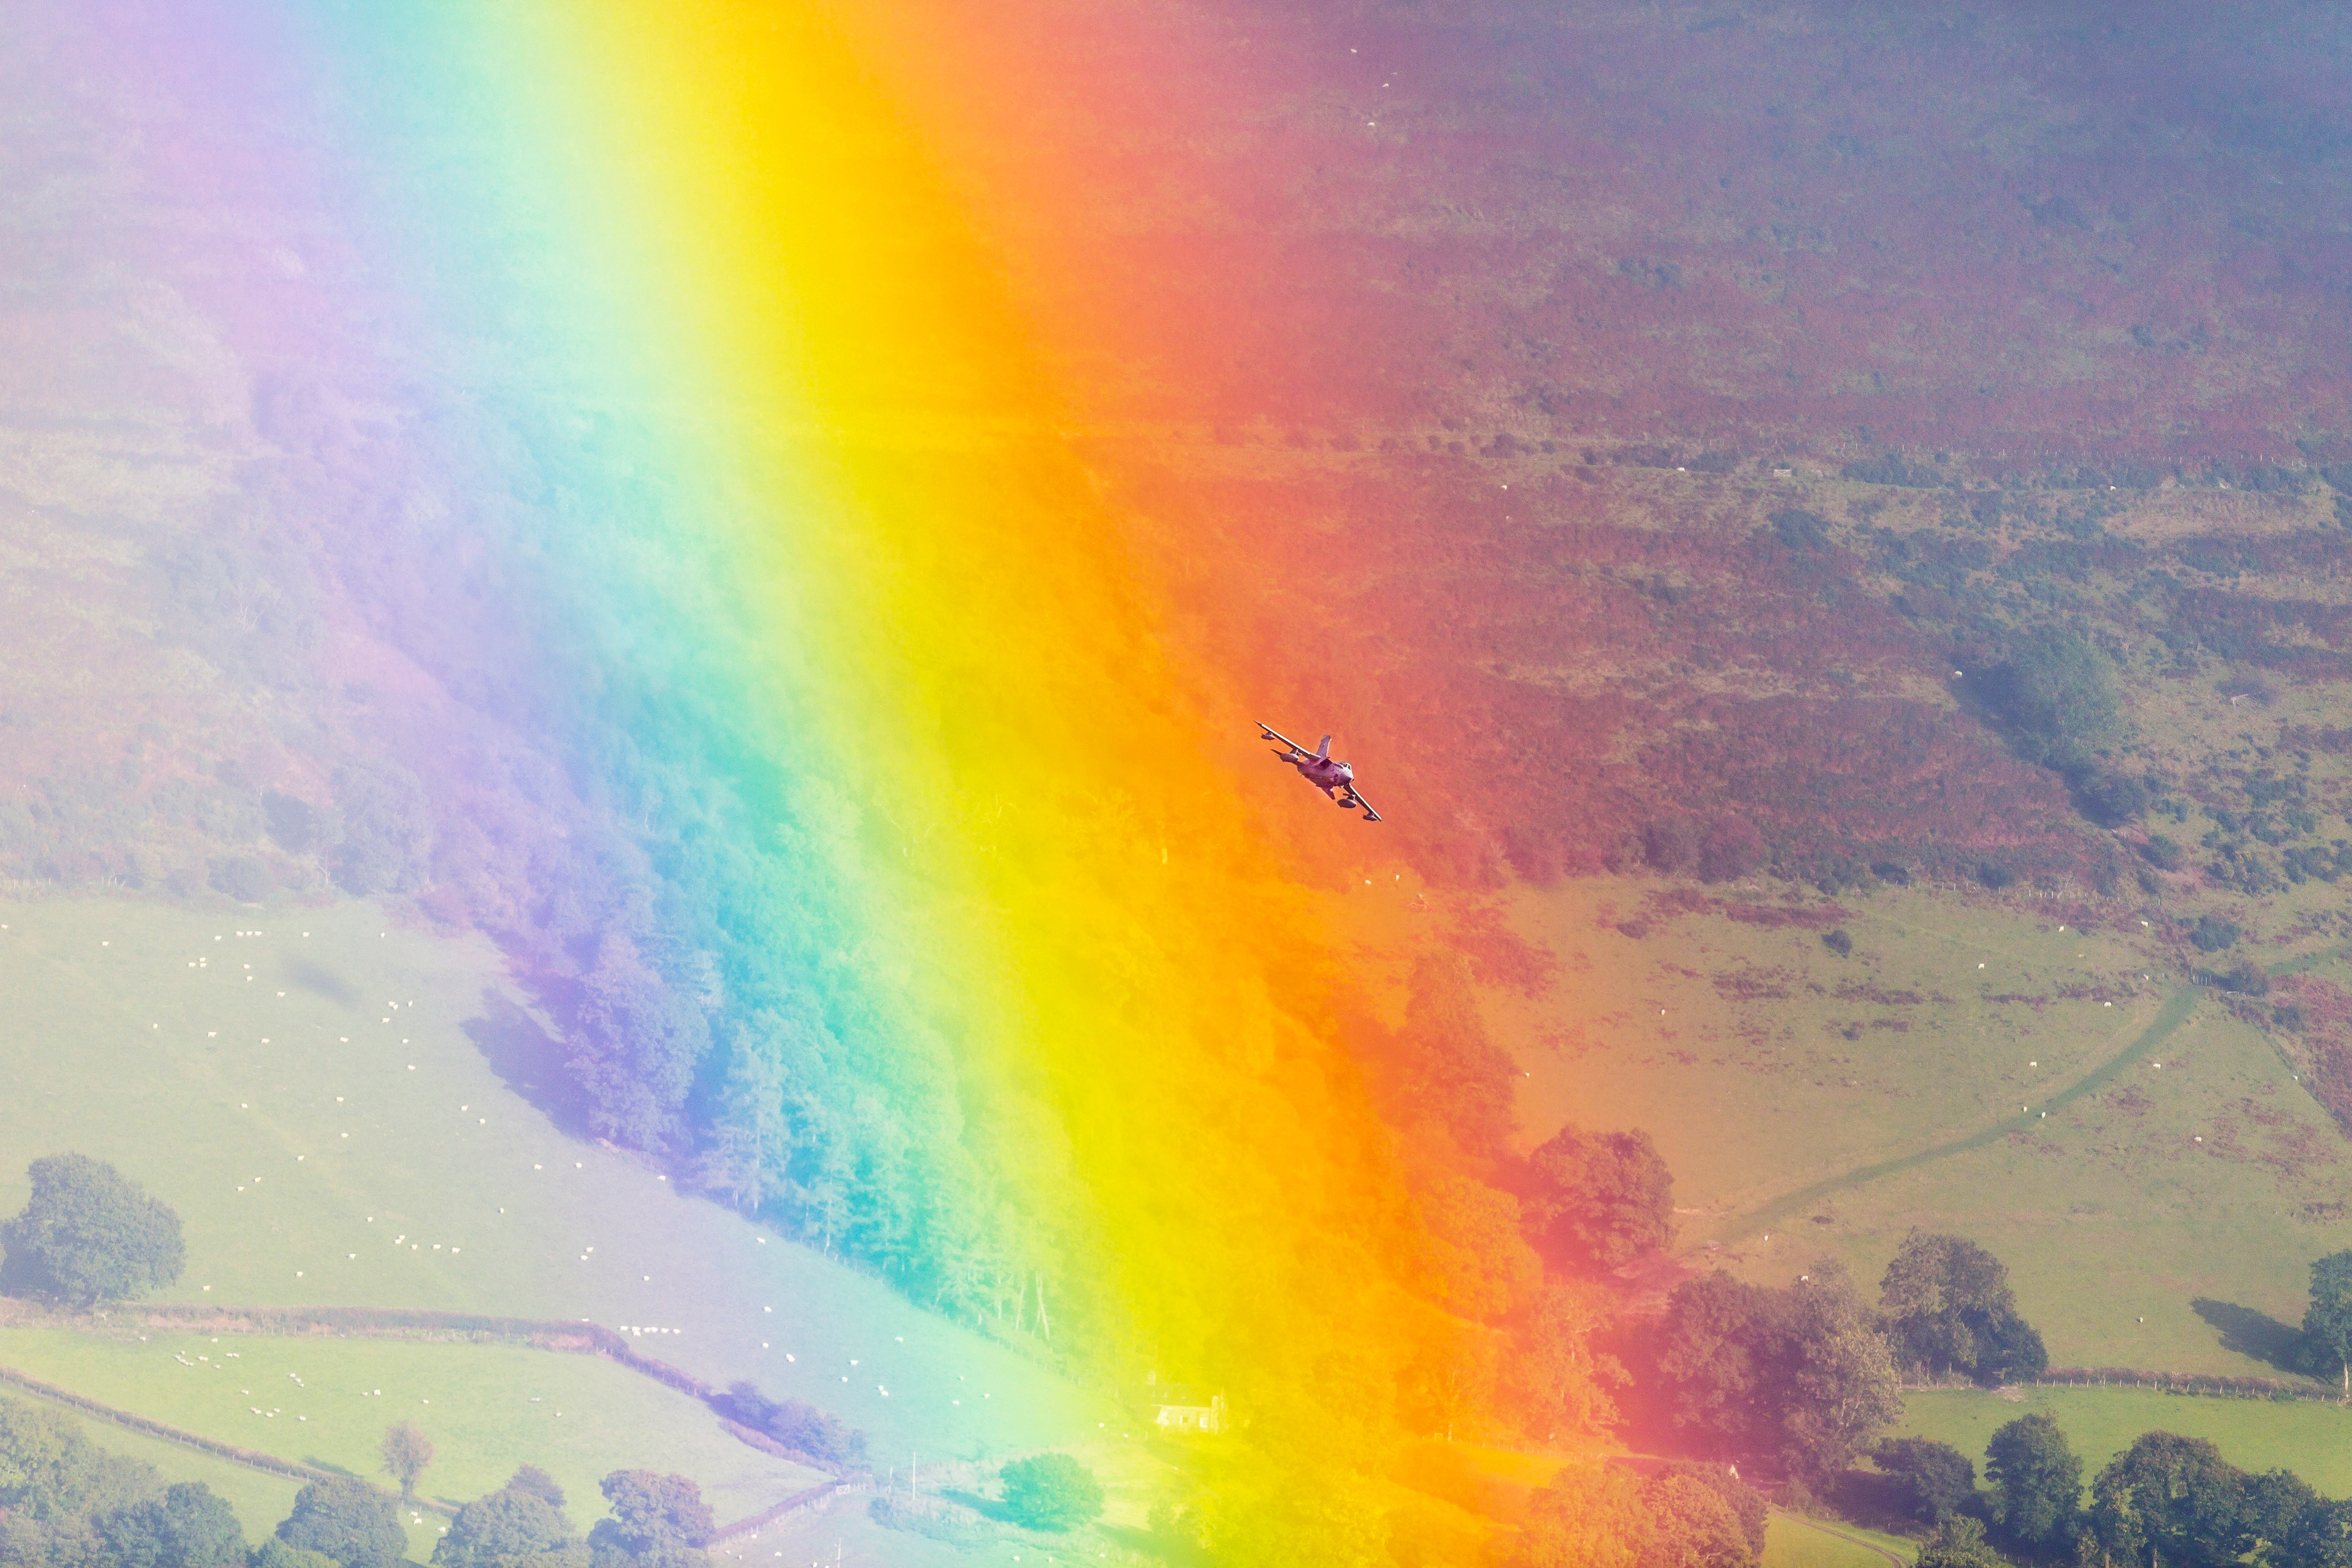 Wanna See a Fighter Jet Fly Through a Rainbow? Of Course You Do | WIRED